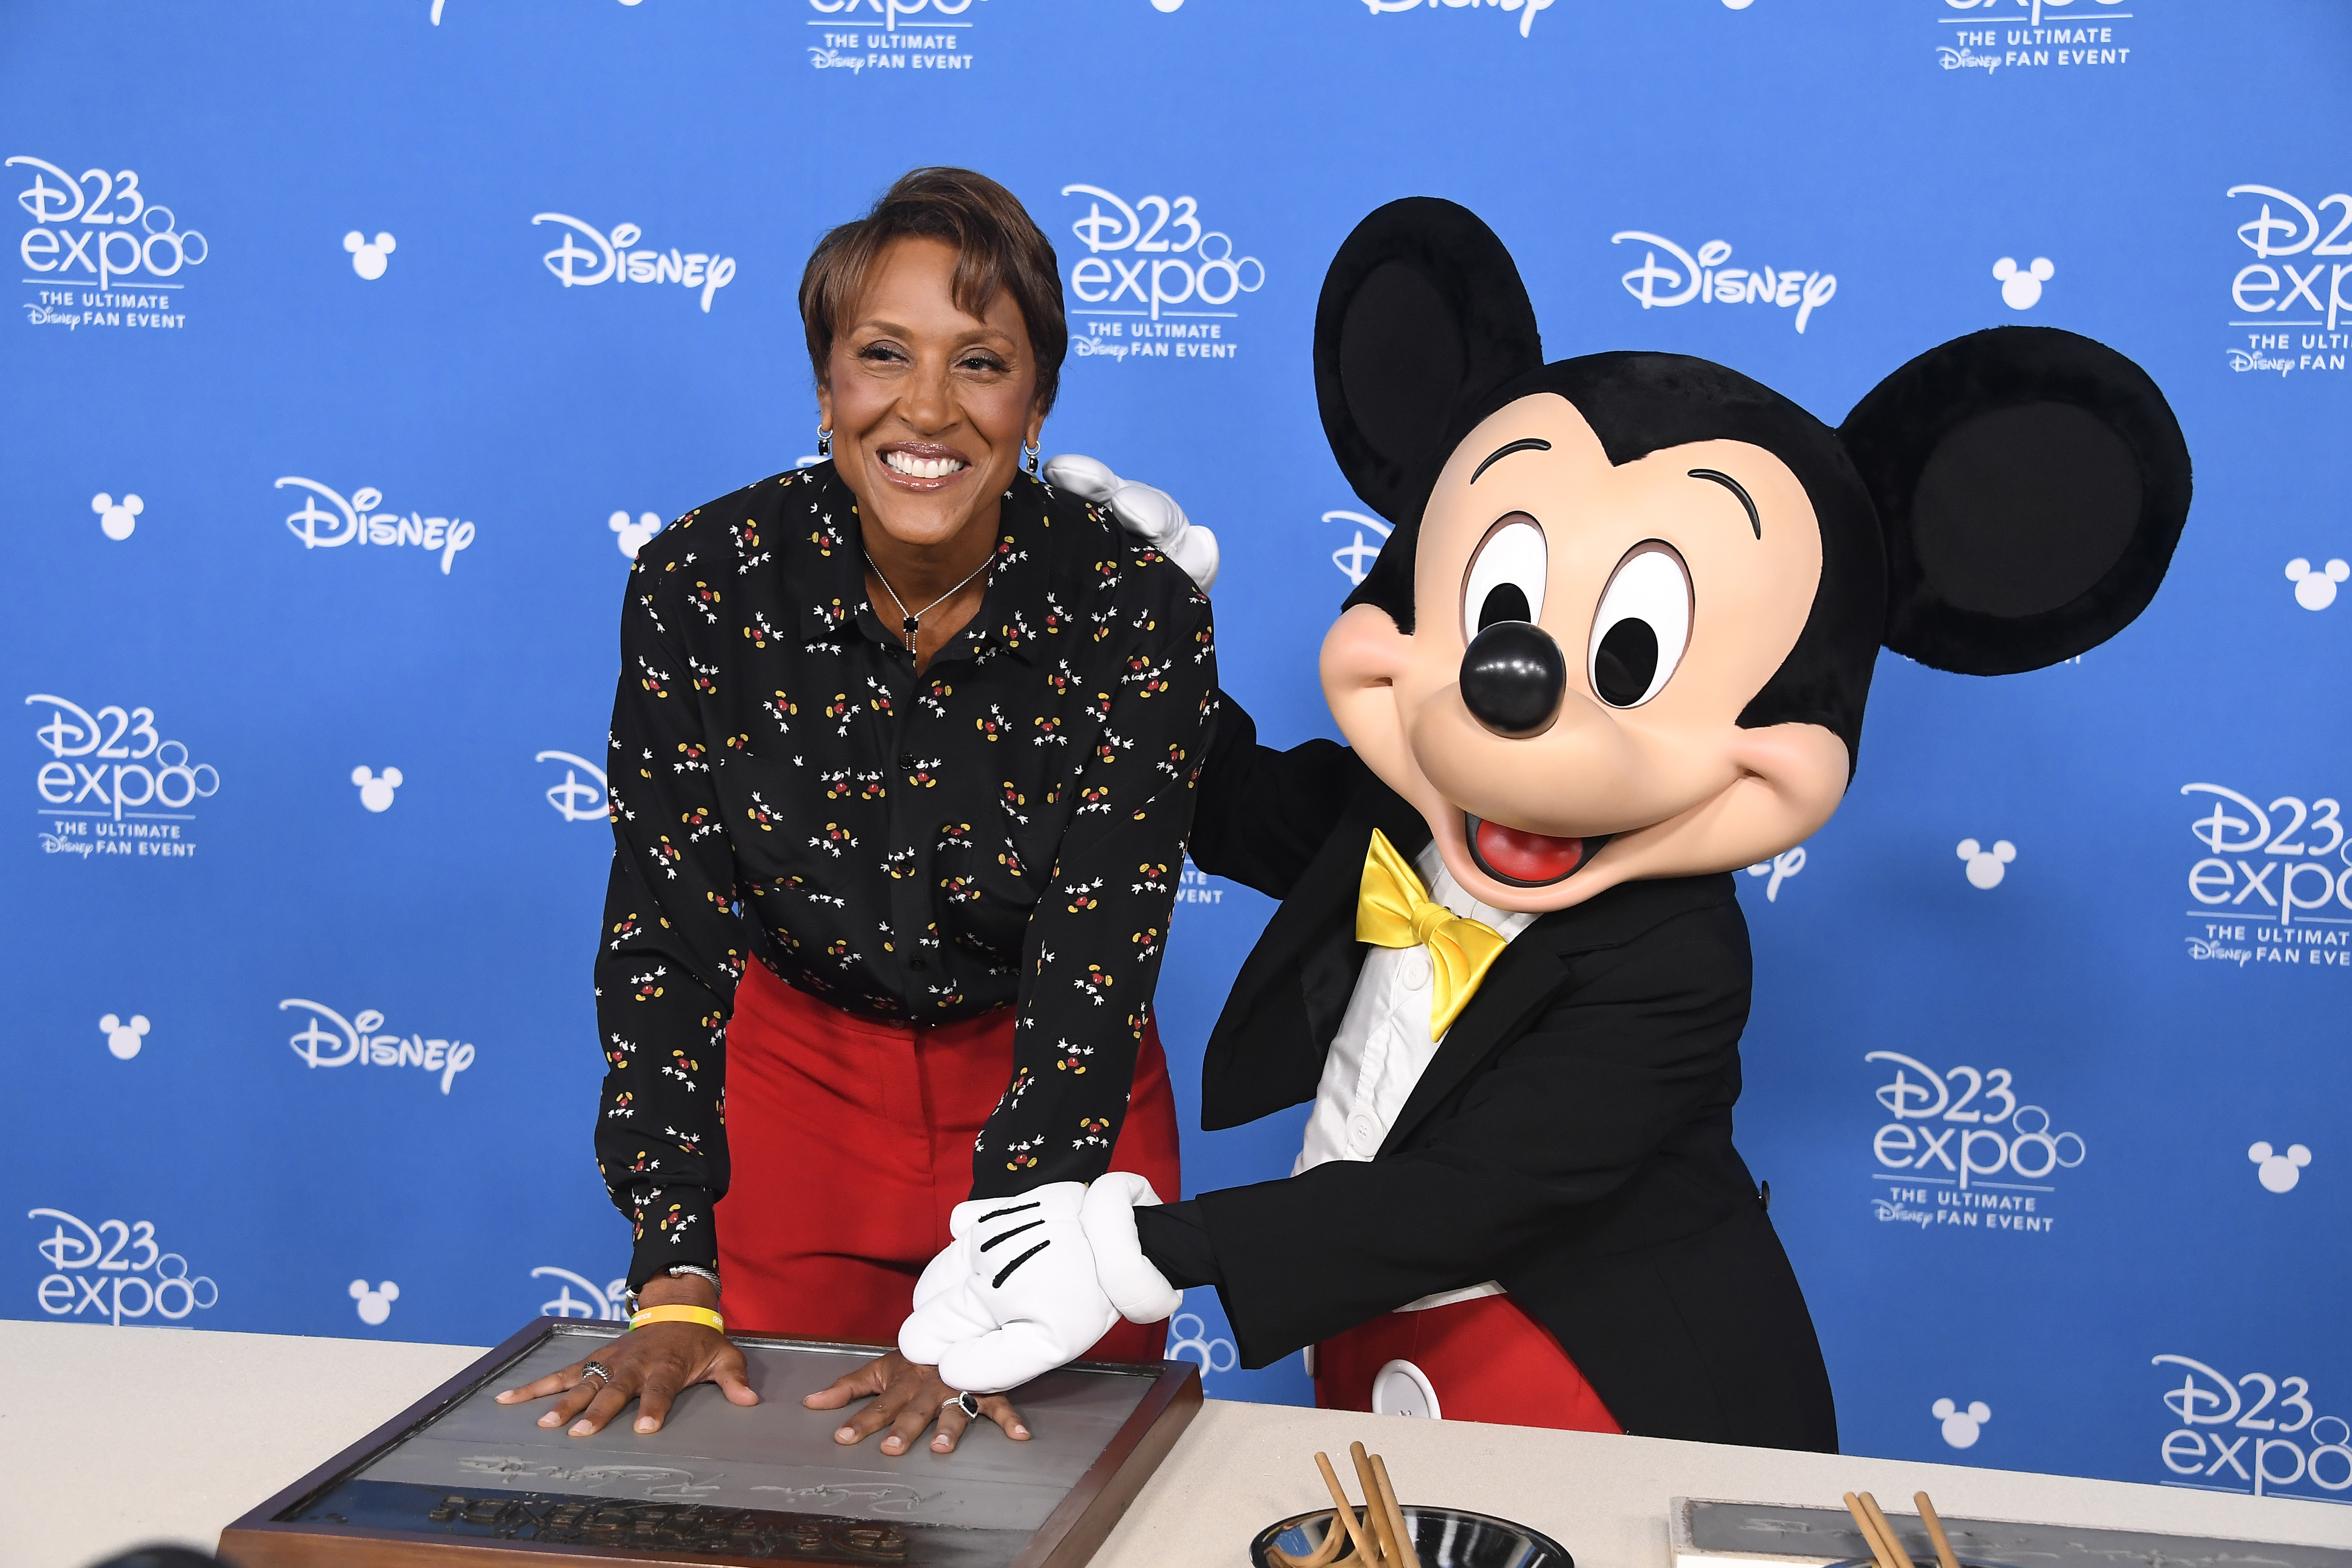 Robin Roberts and Micky Mouse attend a 2019 Disney event in California. (Photo: Frazer Harrison/Getty Images)